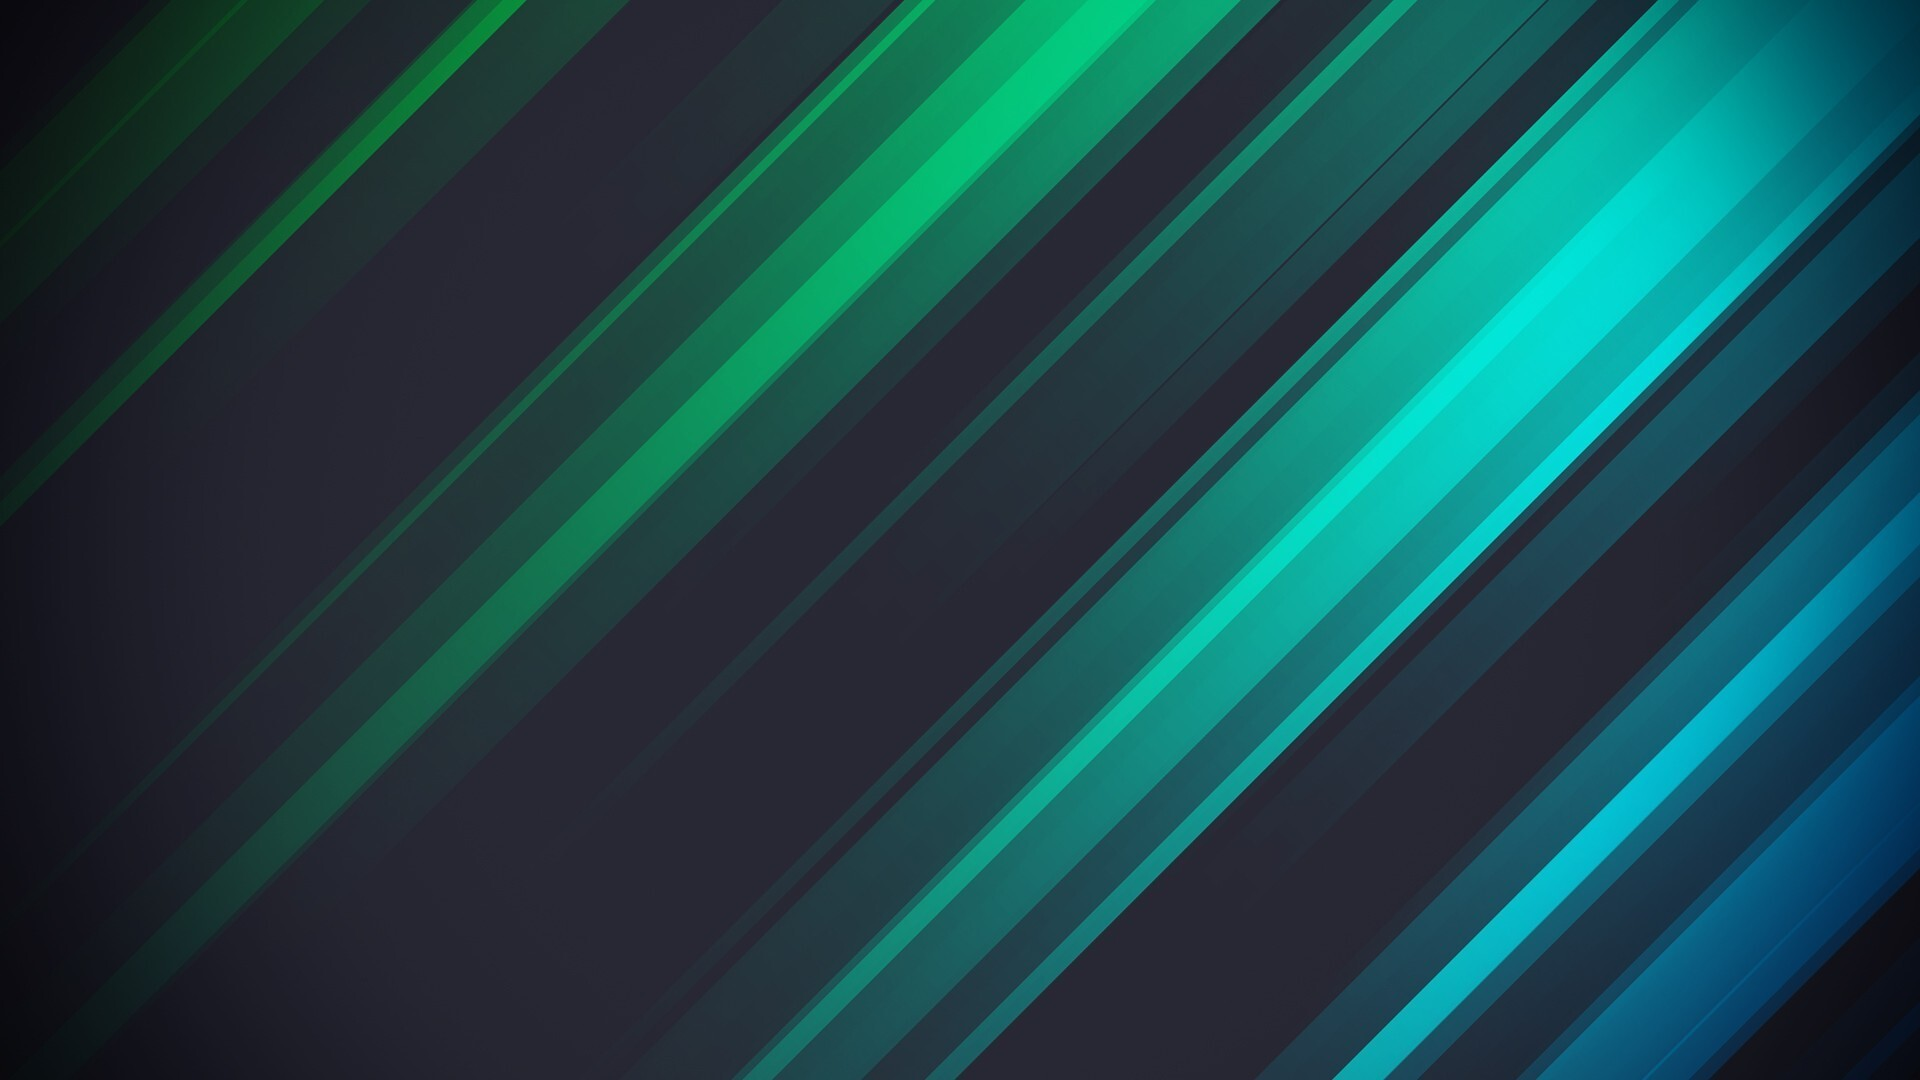 1920x1080 abstract laptop full hd 1080p hd 4k wallpapers, images